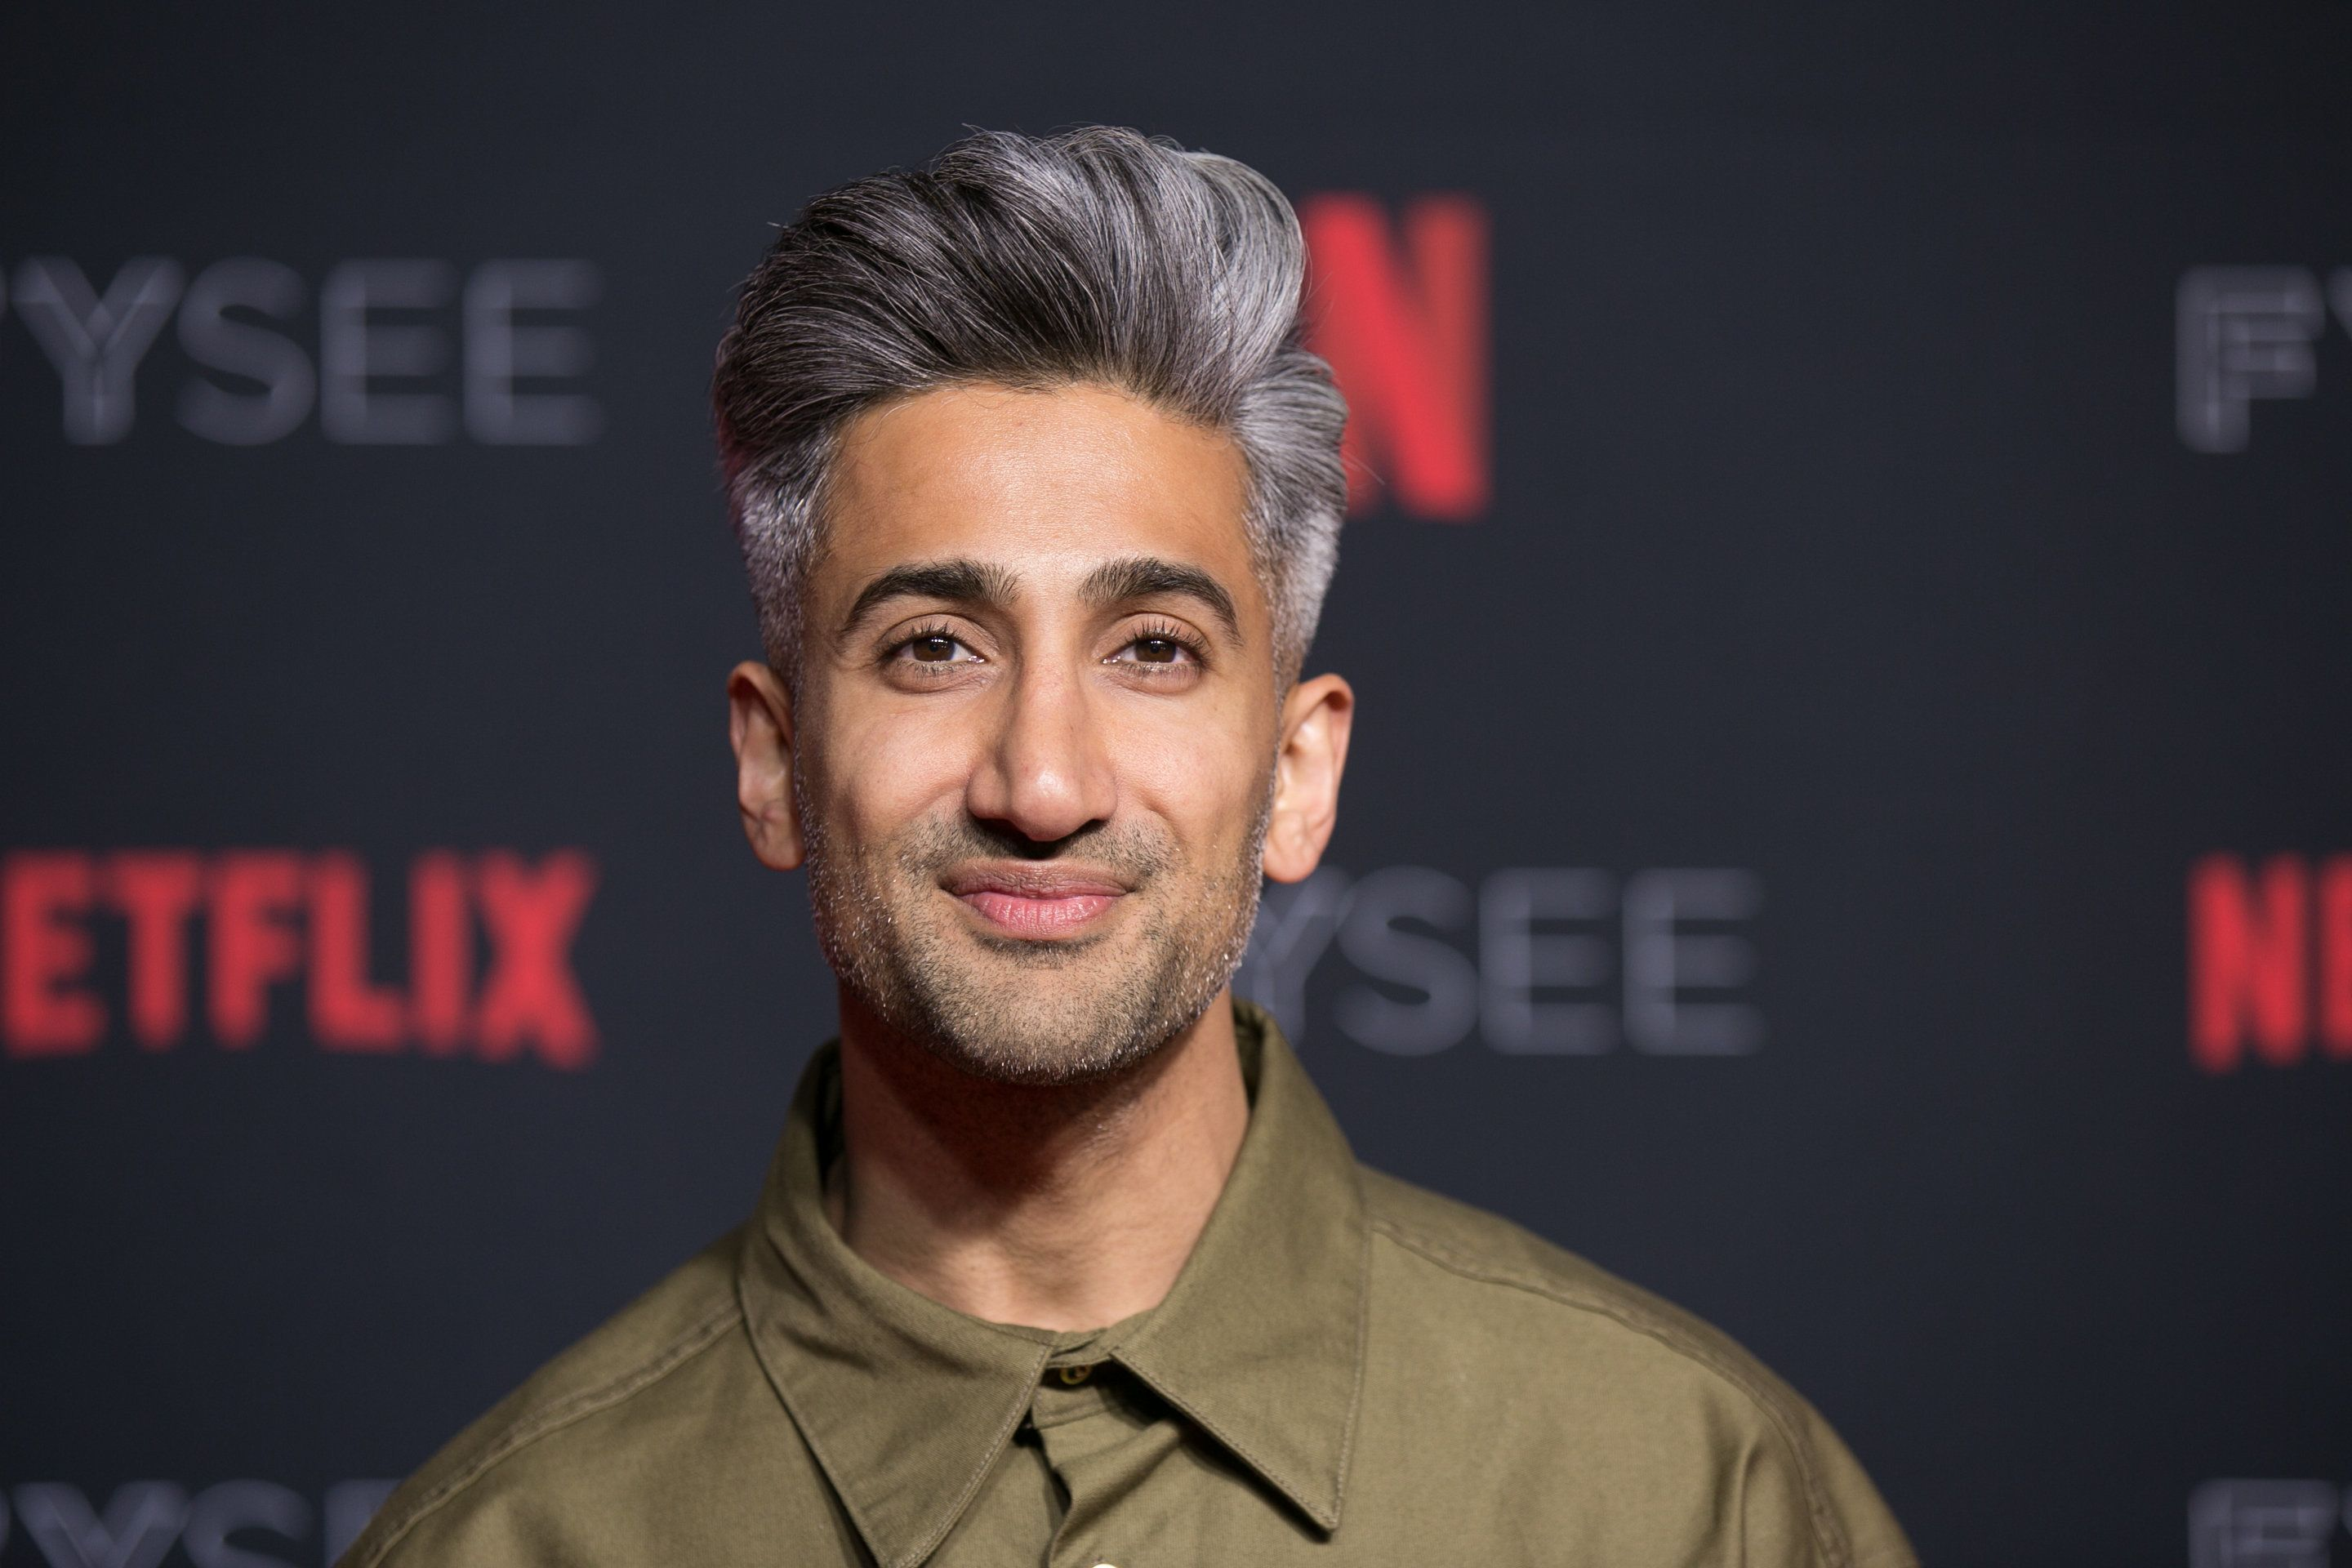 LOS ANGELES, CA - MAY 31:  Tan France attends the #NETFLIXFYSEE Event For 'Queer Eye' at Netflix FYSEE At Raleigh Studios on May 31, 2018 in Los Angeles, California.  (Photo by Gabriel Olsen/FilmMagic)